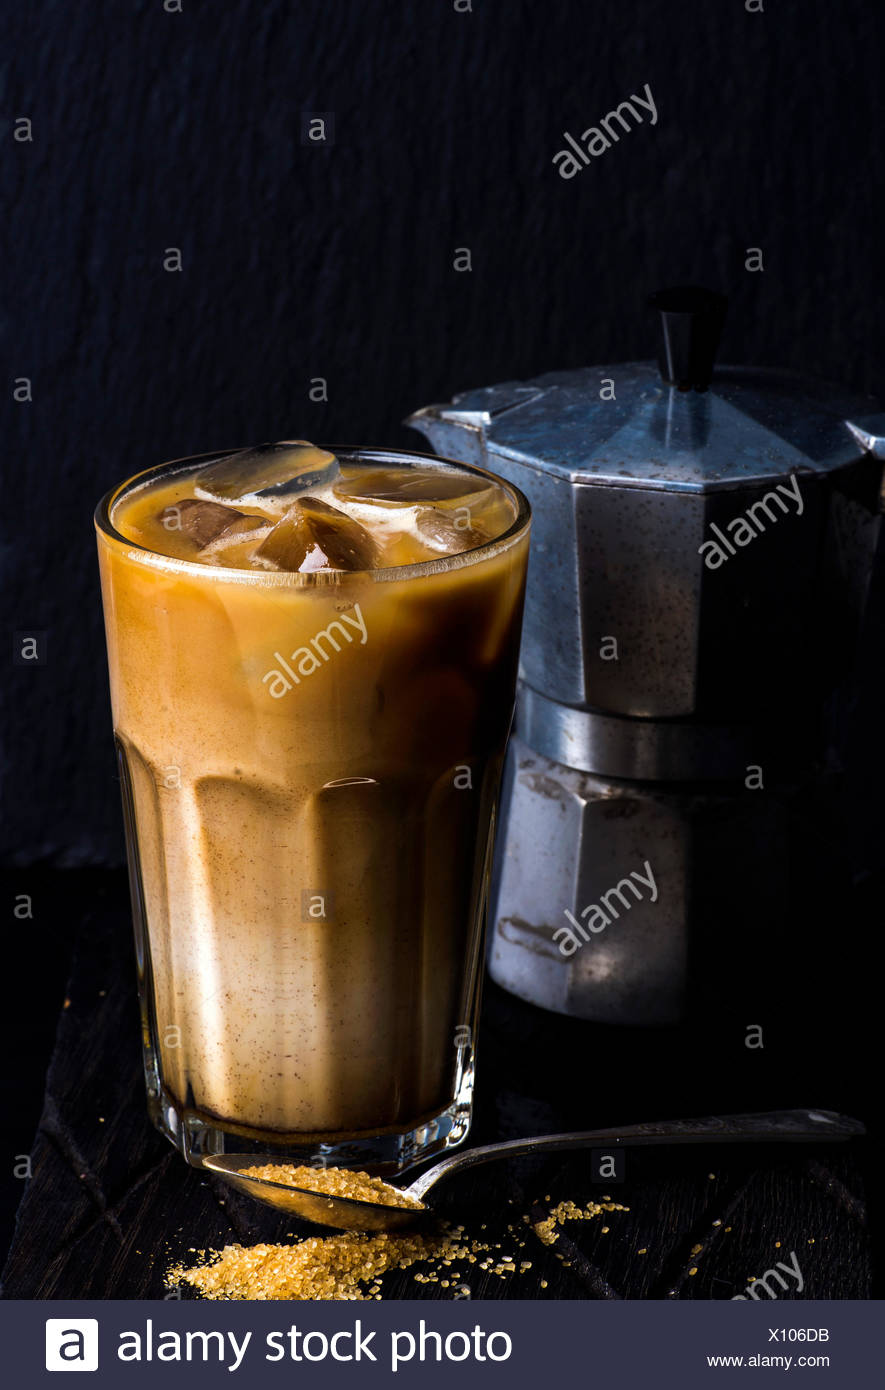 Iced coffee with milk in a tall glass, moka pot, black background, selective focus - Stock Image